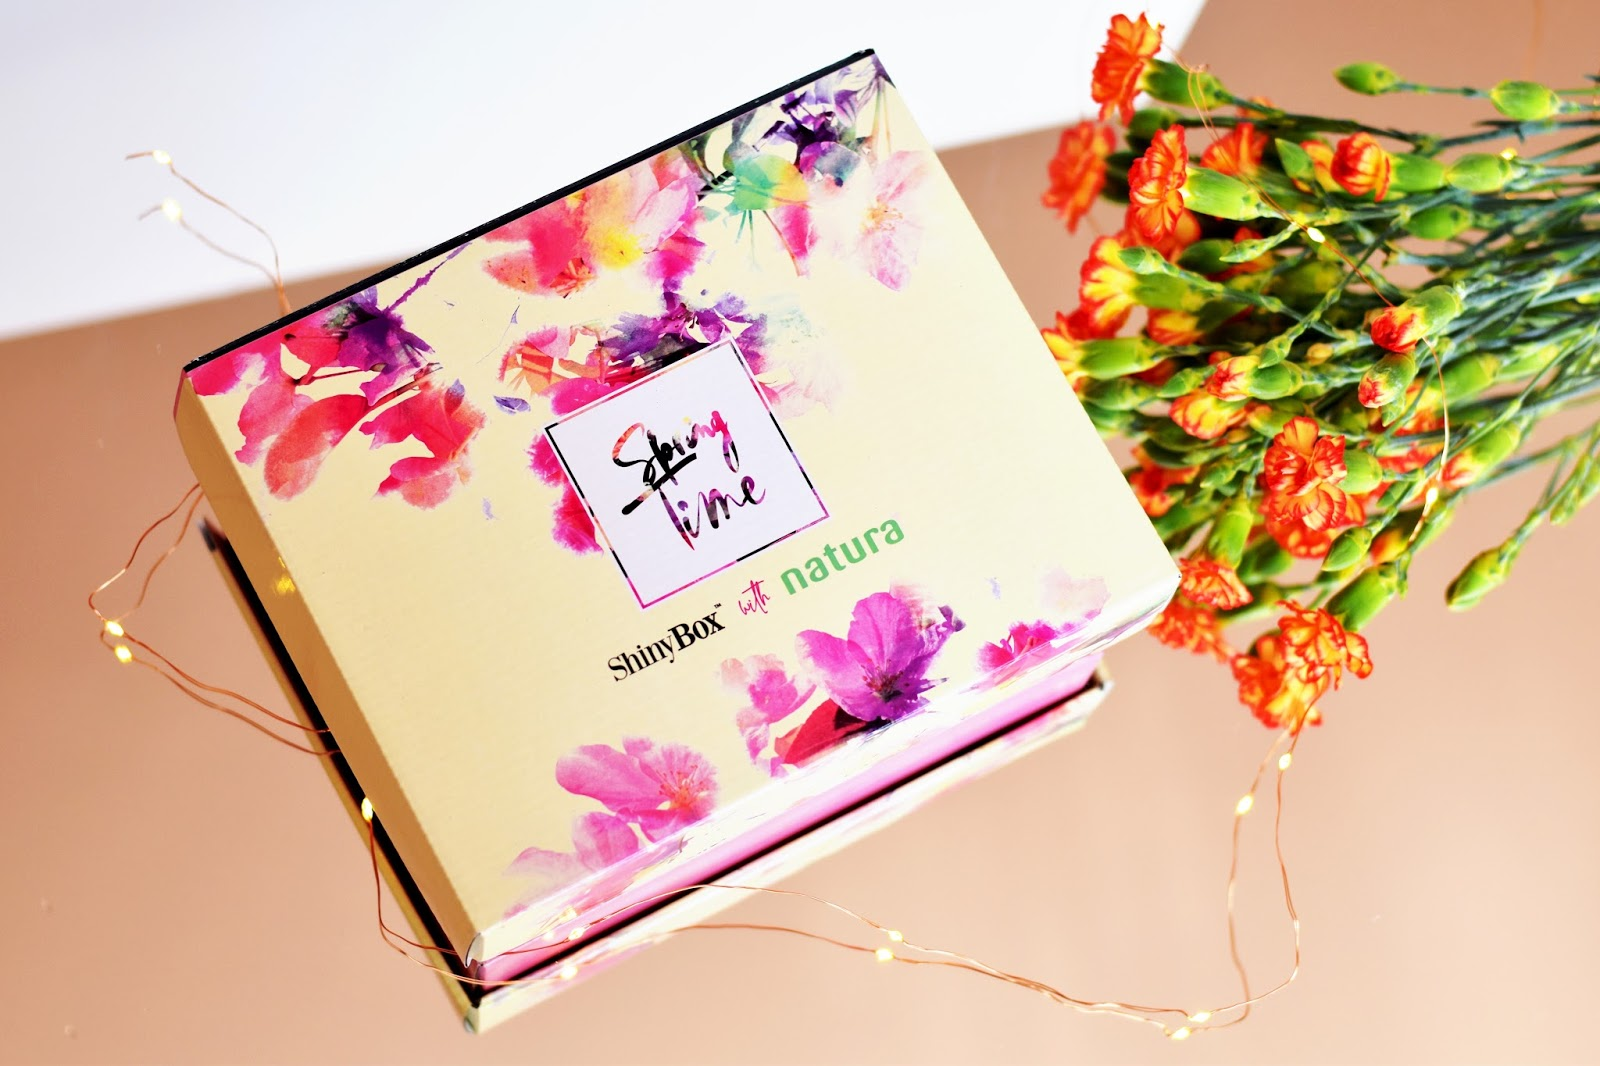 Shinybox SPRING TIME & Drogeria Natura